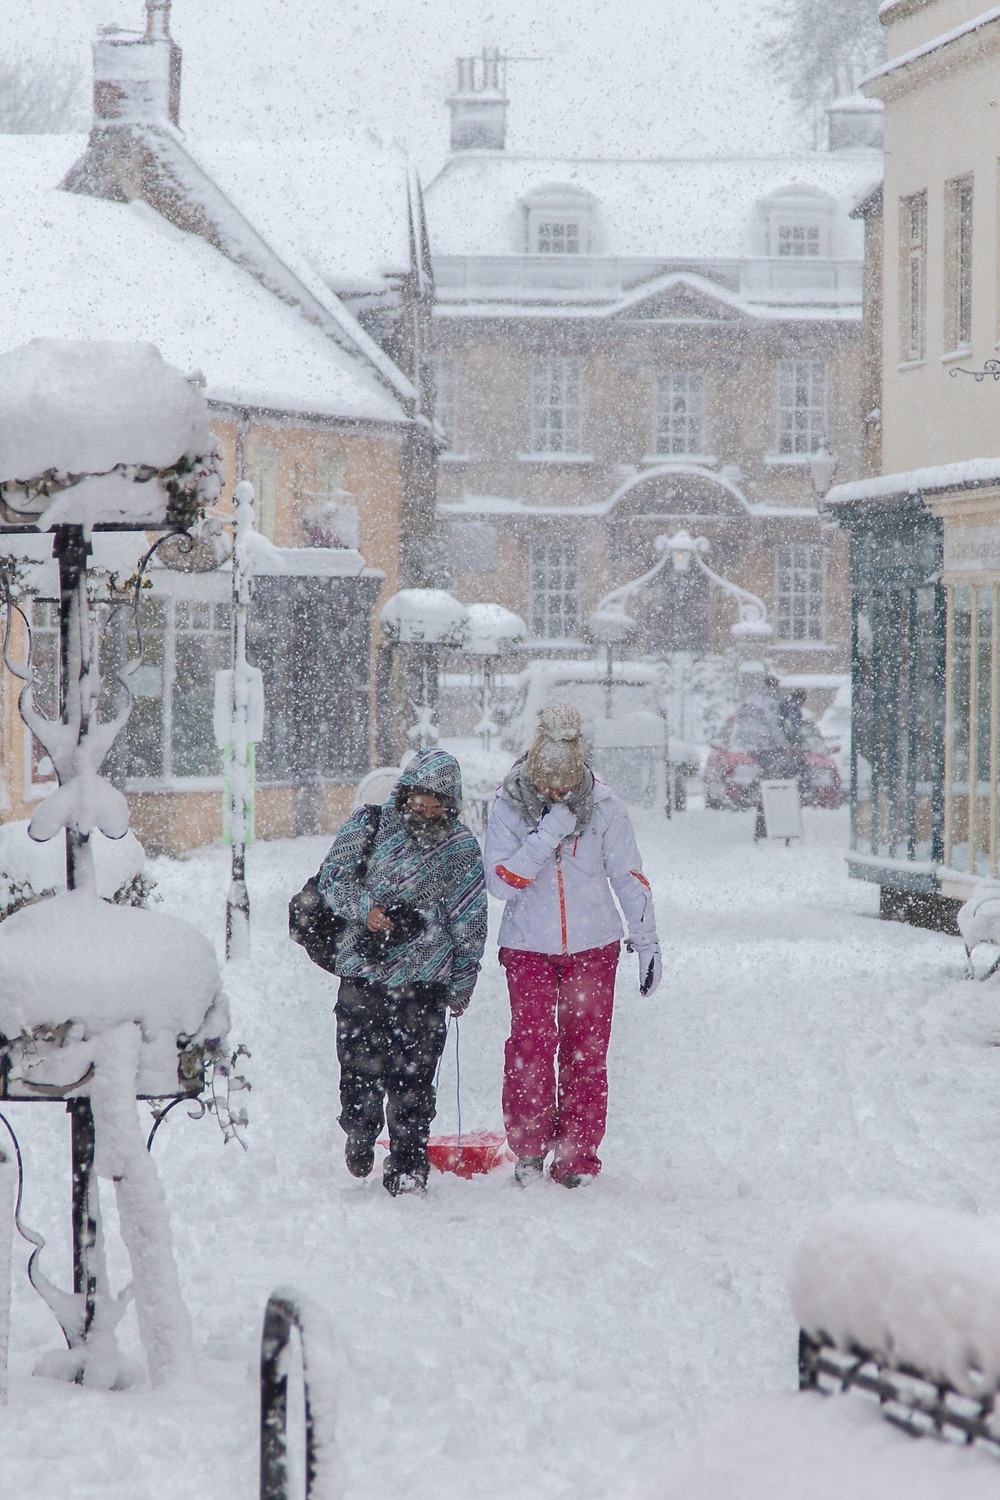 Braving the conditions after heavy snowfall in Corsham town centre